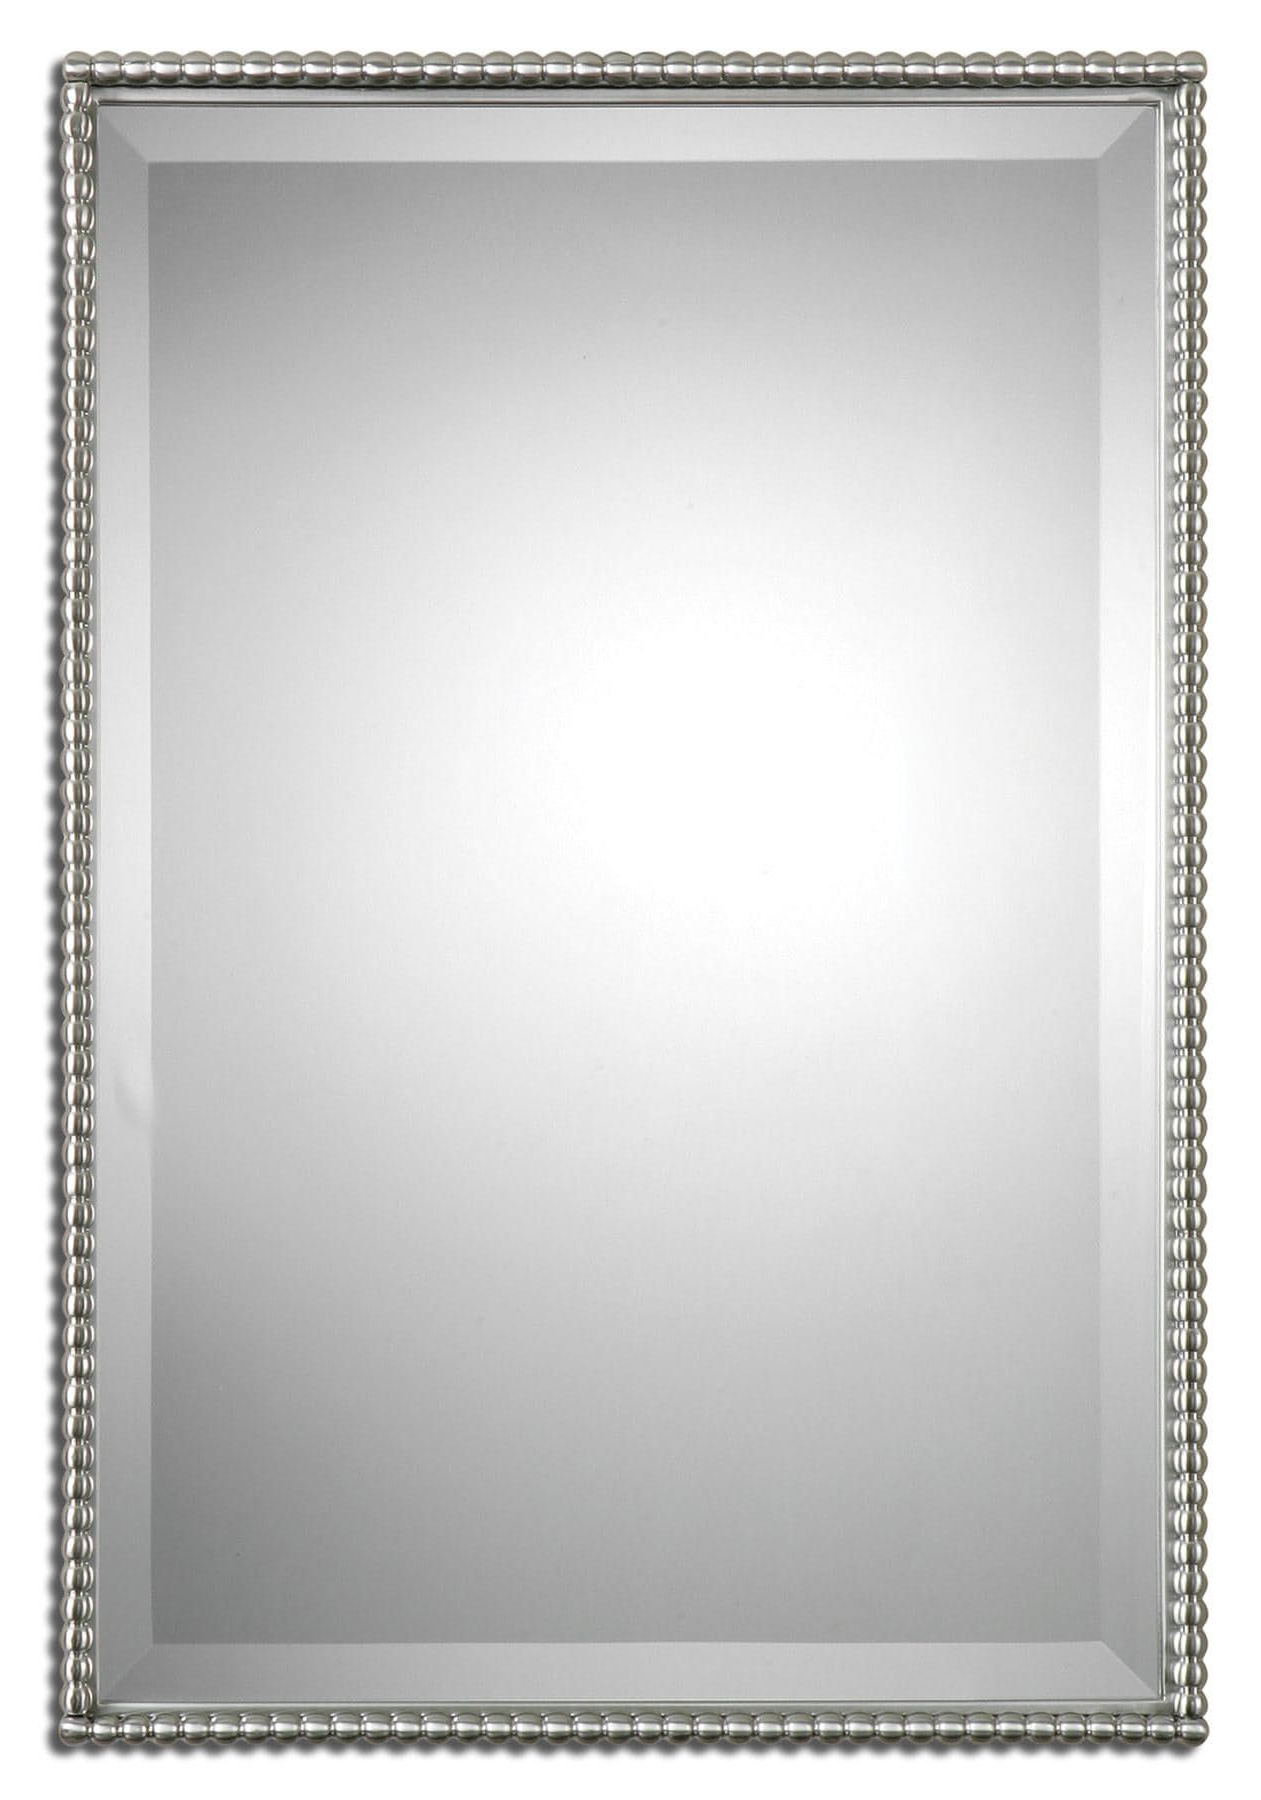 Brushed Nickel, Metal Frame Features A Decorative Beading Design In Current Abdul Accent Mirrors (View 8 of 20)